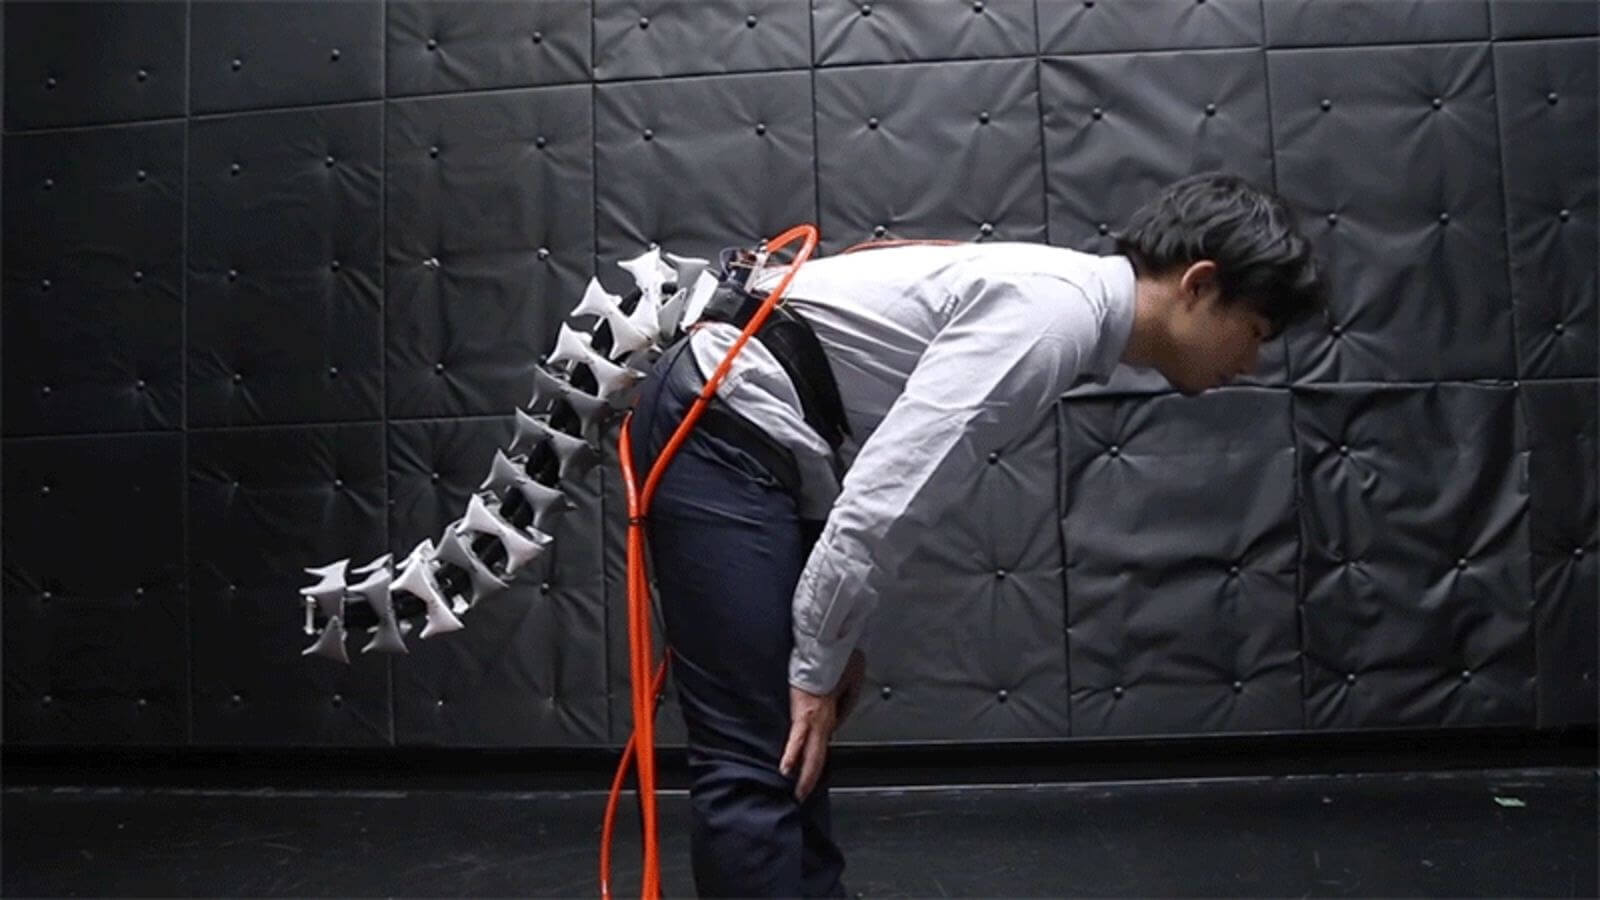 Check out this robotic tail that could improve your agility and balance